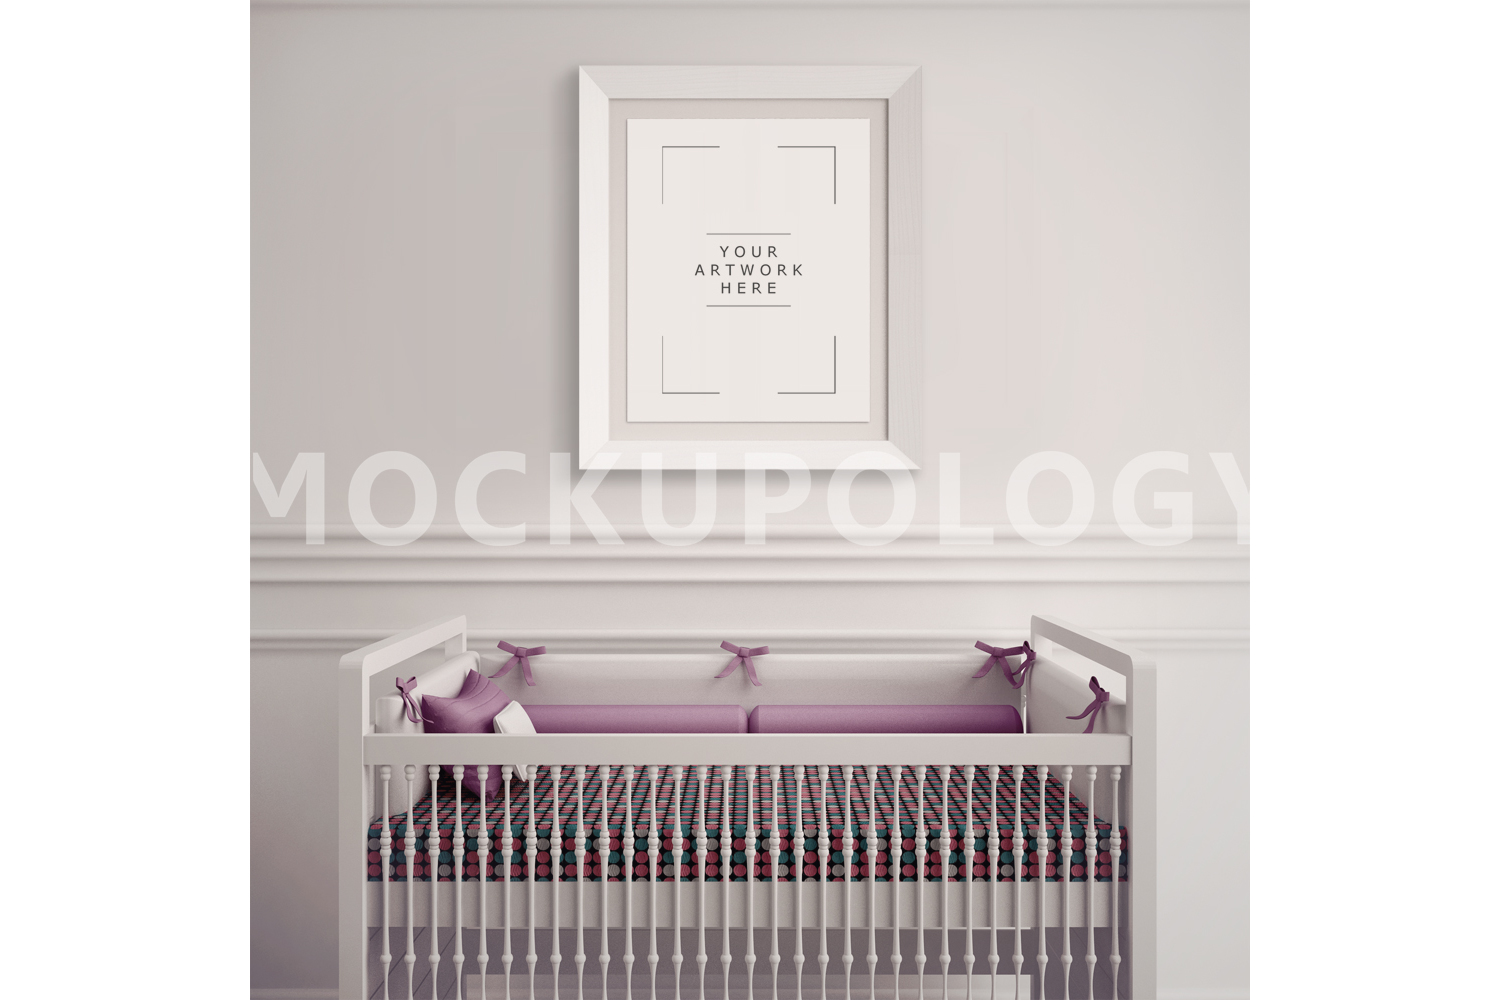 8x10 White Frame Nursery Interior Mockup, Baby Cradle Styled Photography Poster Mockup, Plain Wall Background, INSTANT DOWNLOAD example image 1